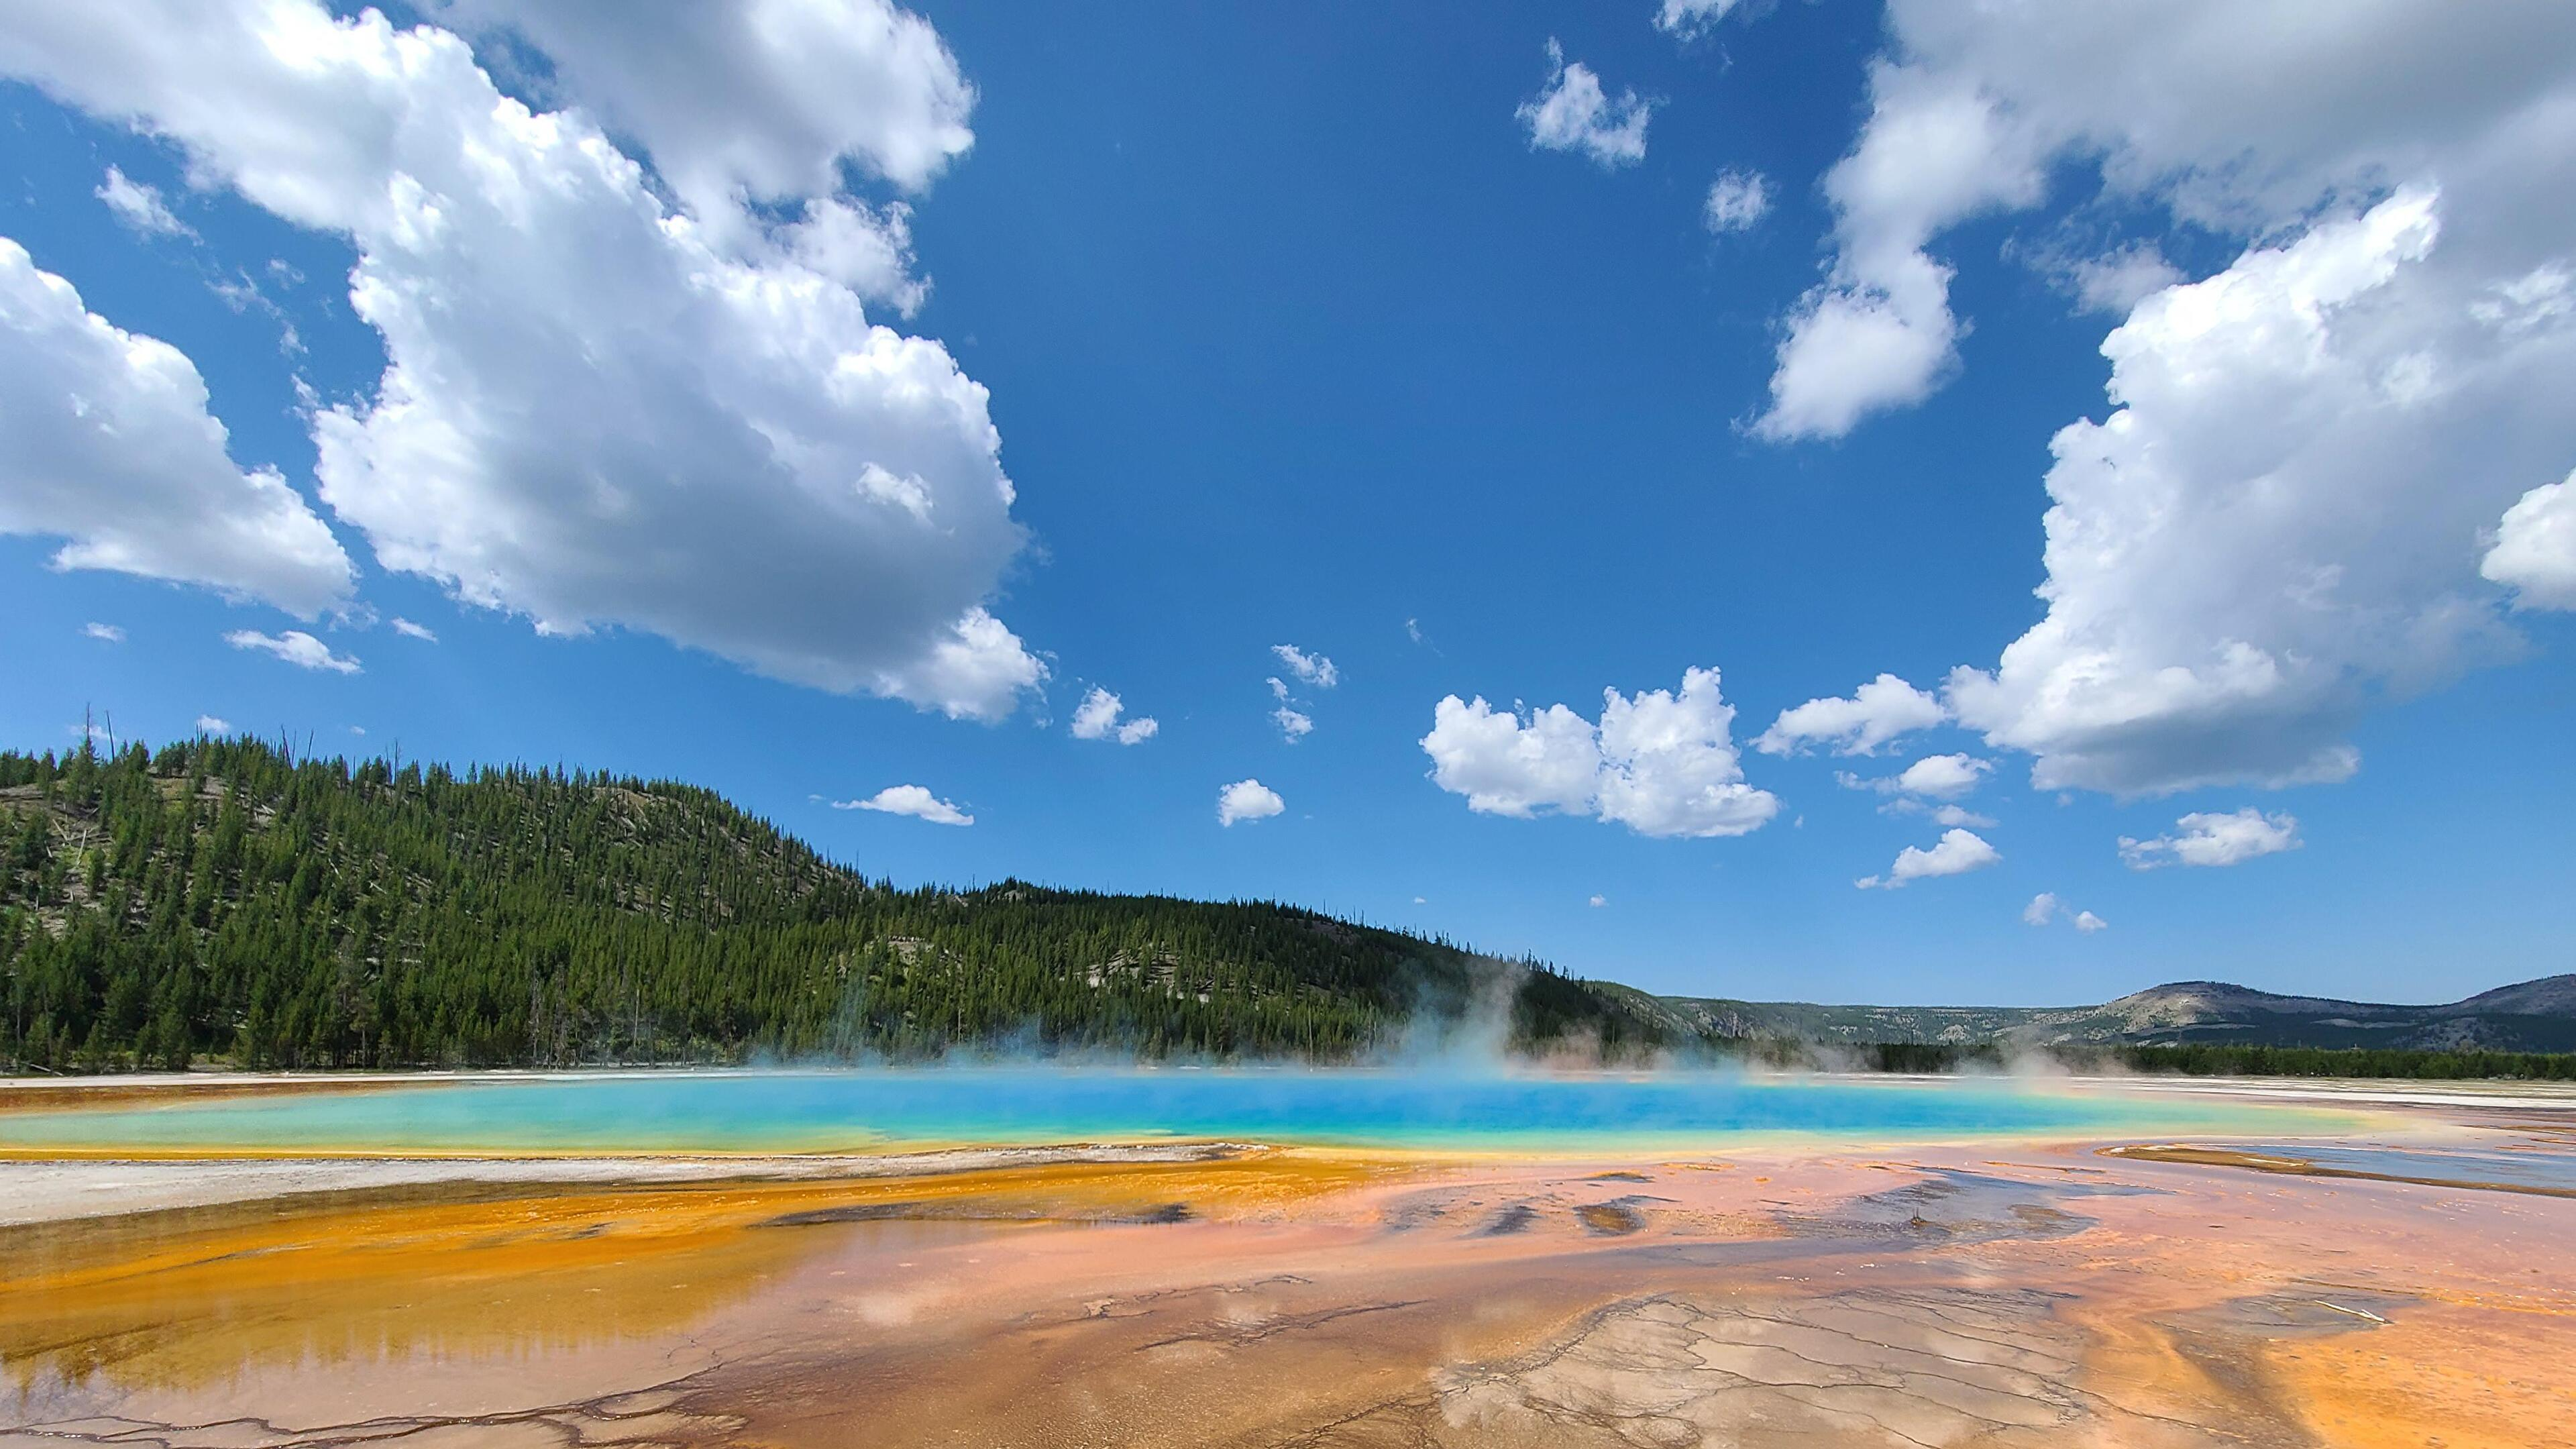 Yellowstone 4k Wallpapers For Your Desktop Or Mobile Screen Free And Easy To Download